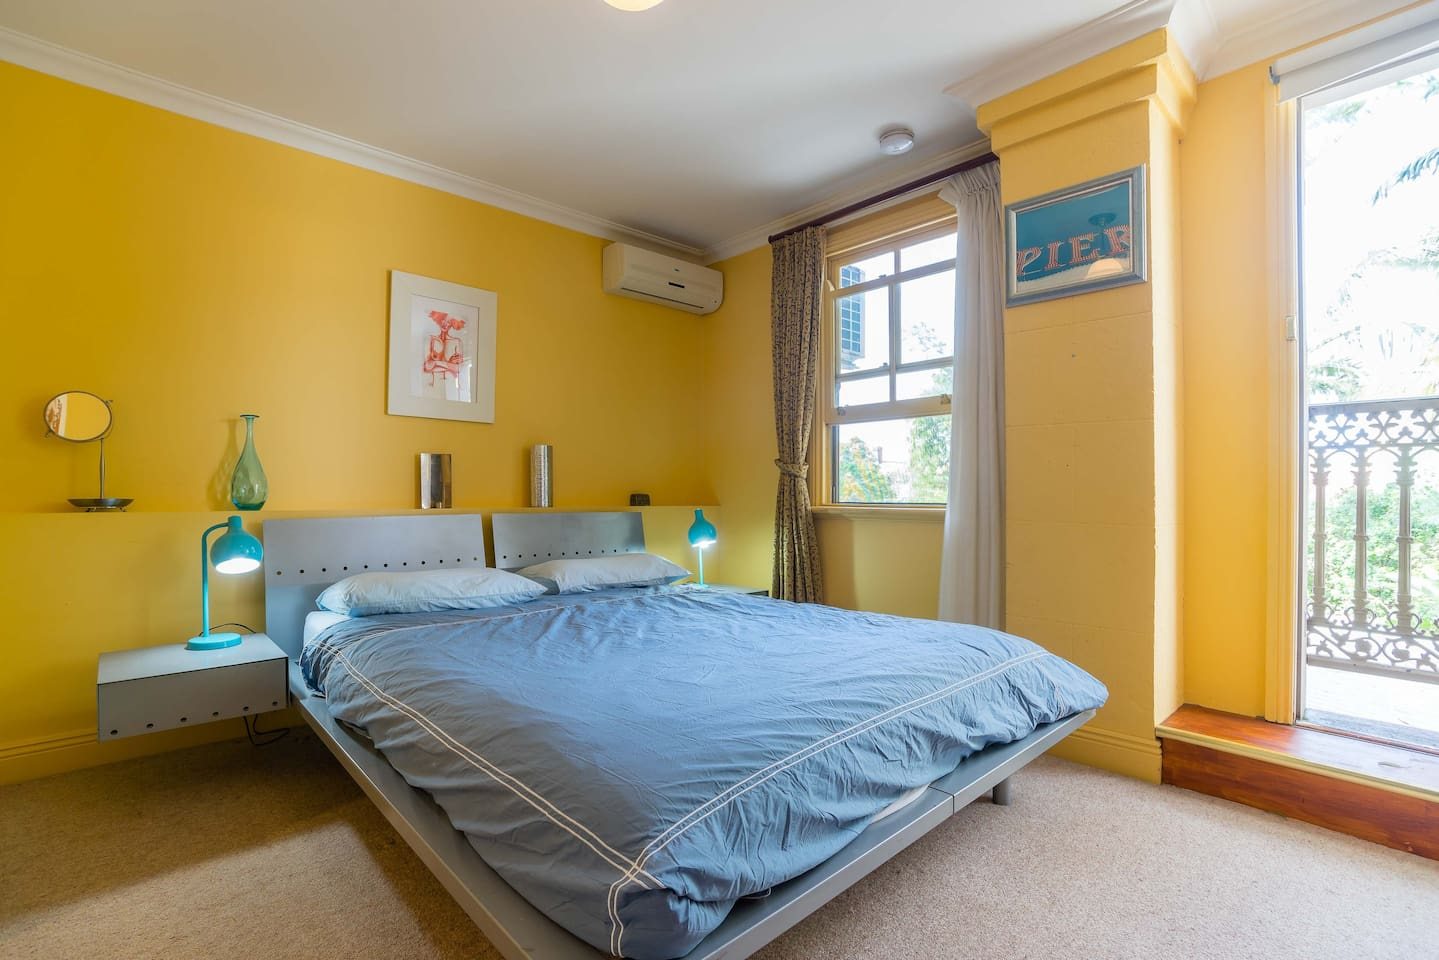 """The master bedroom features a queen-size bed with quality linen, ample storage, aircon/heating and a Juliette balcony (for a fresh breeze). """"The bed in main room was super comfy. Maybe one of the most comfy beds I've ever slept in.""""(Katie, guest)."""